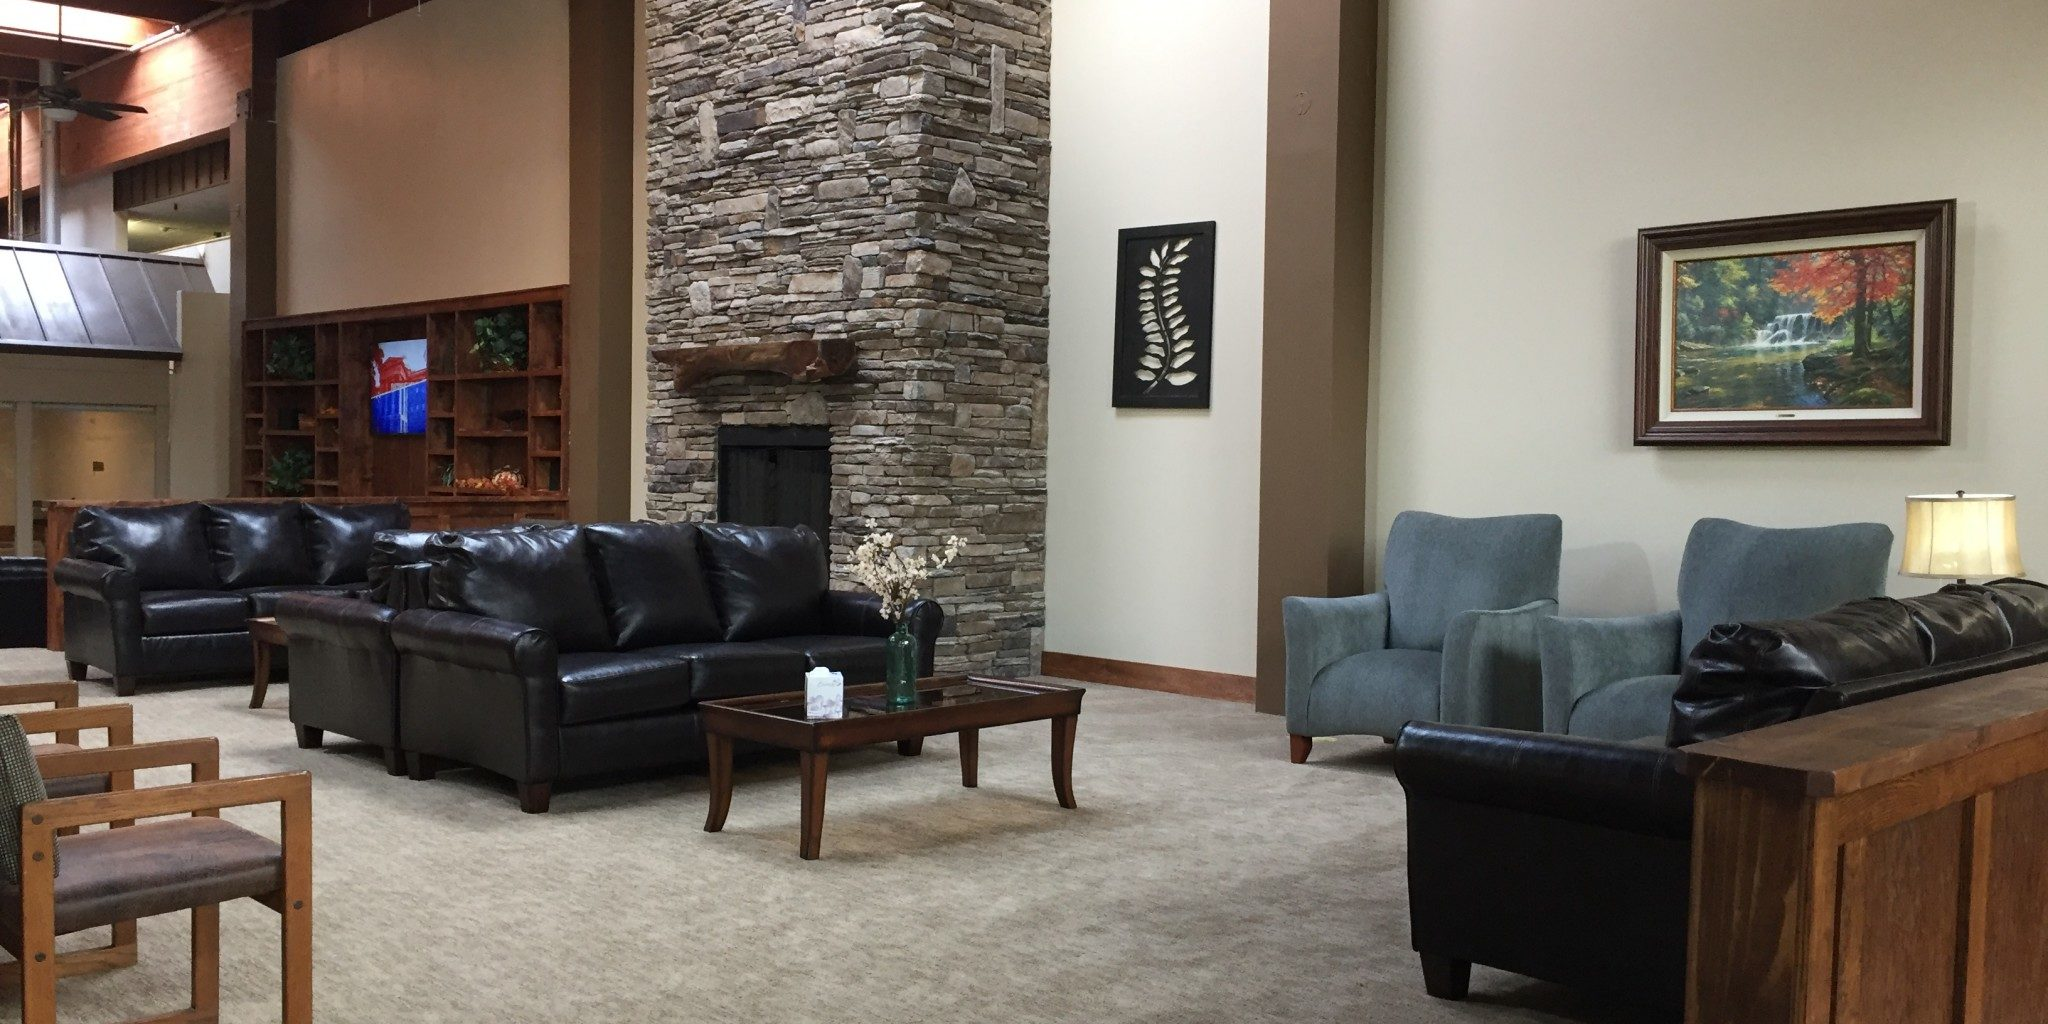 Lobby Area at Cascades Mountain Resort